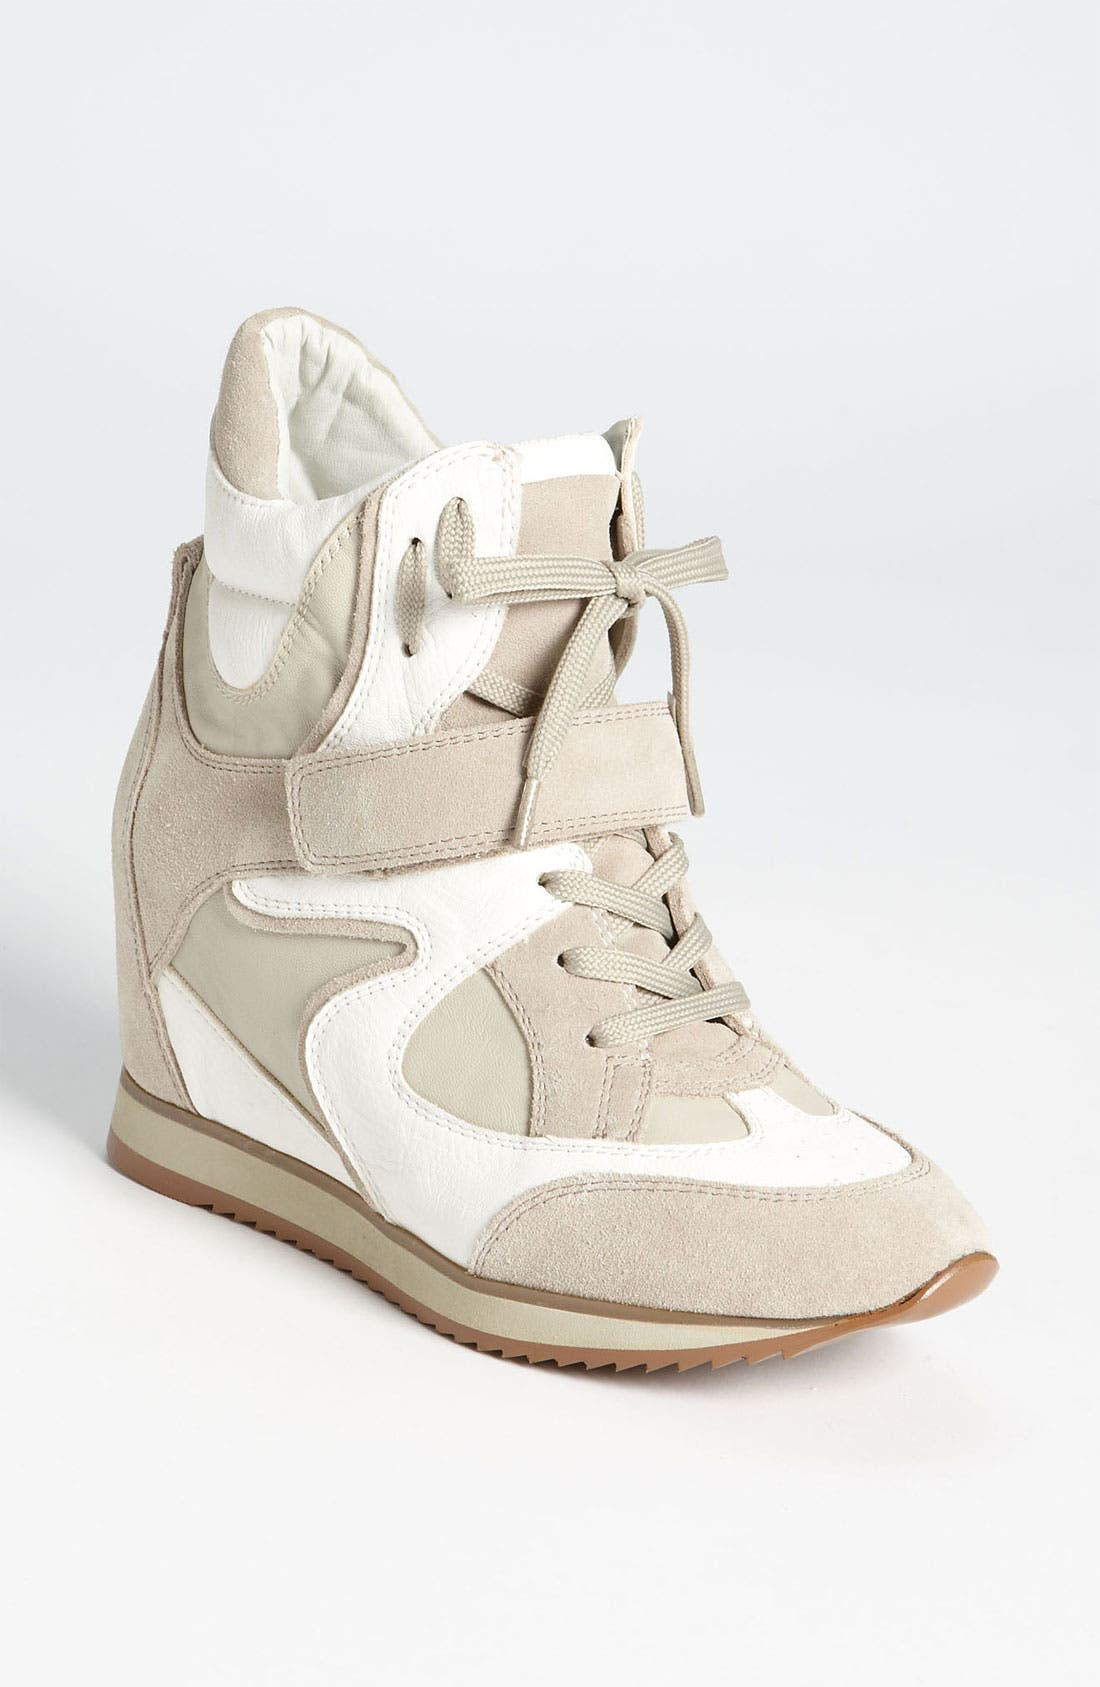 Alternate Image 1 Selected - REPORT 'Tao' Wedge Sneaker